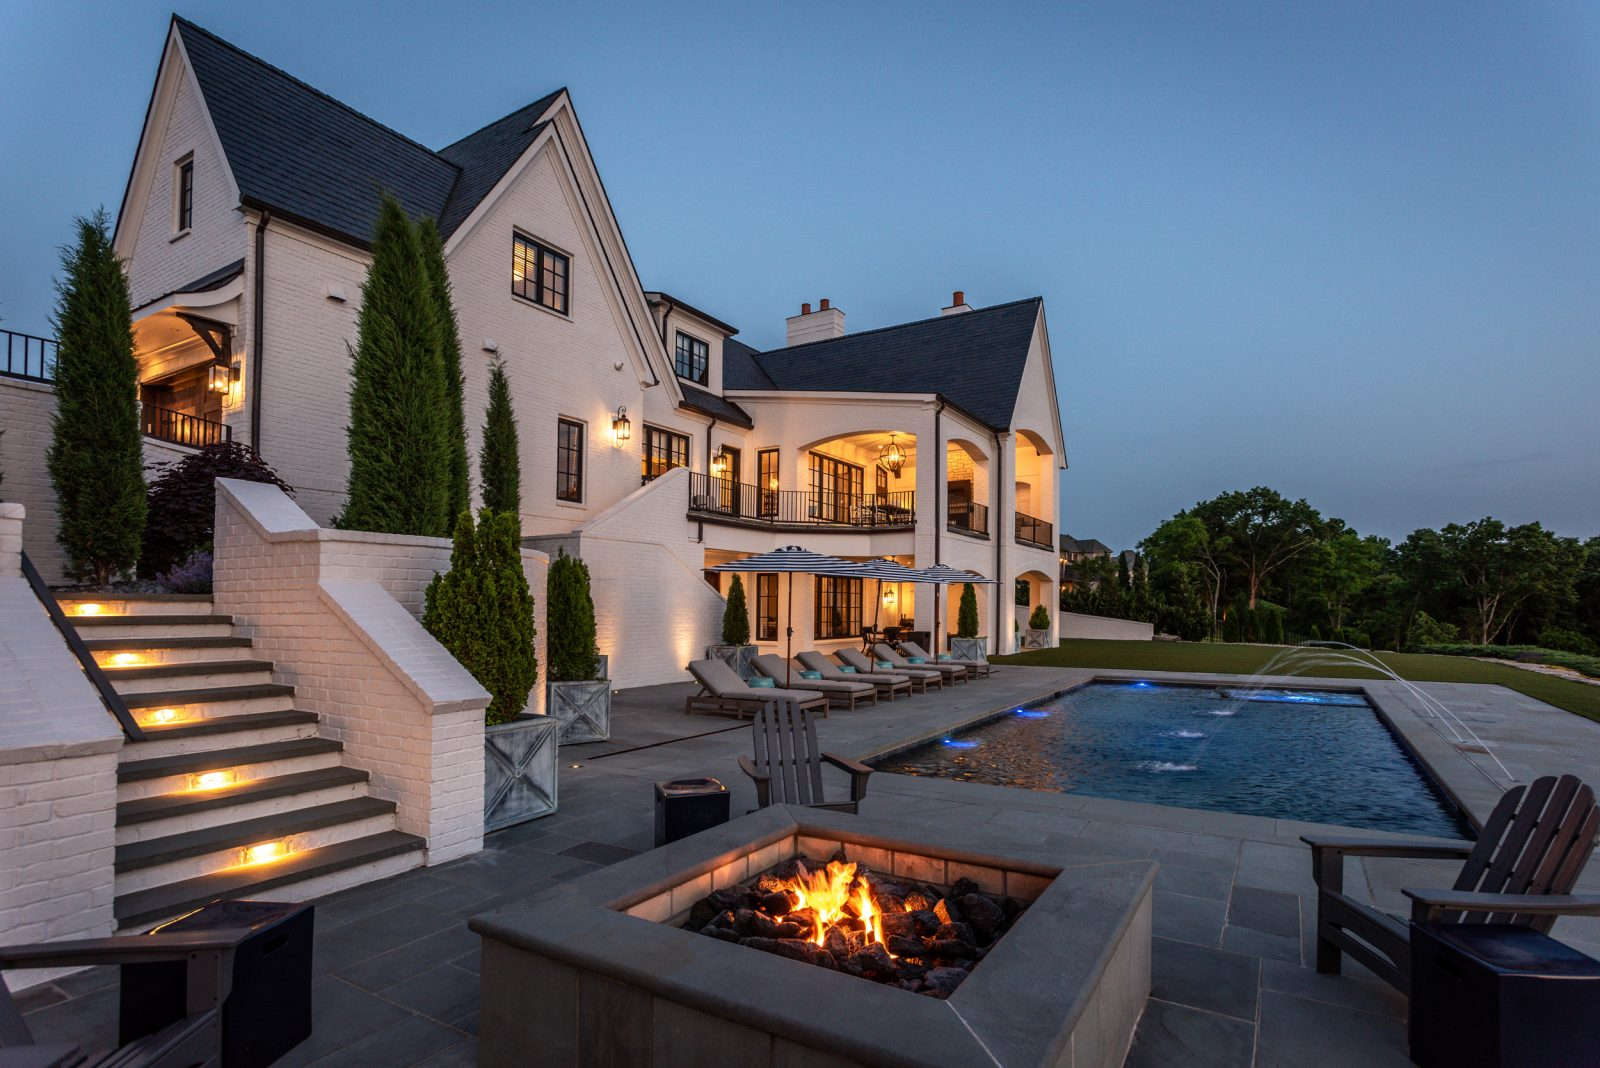 A beautiful 3 story house in Franklin Tennessee, as part of our new series, Backyard Bliss.